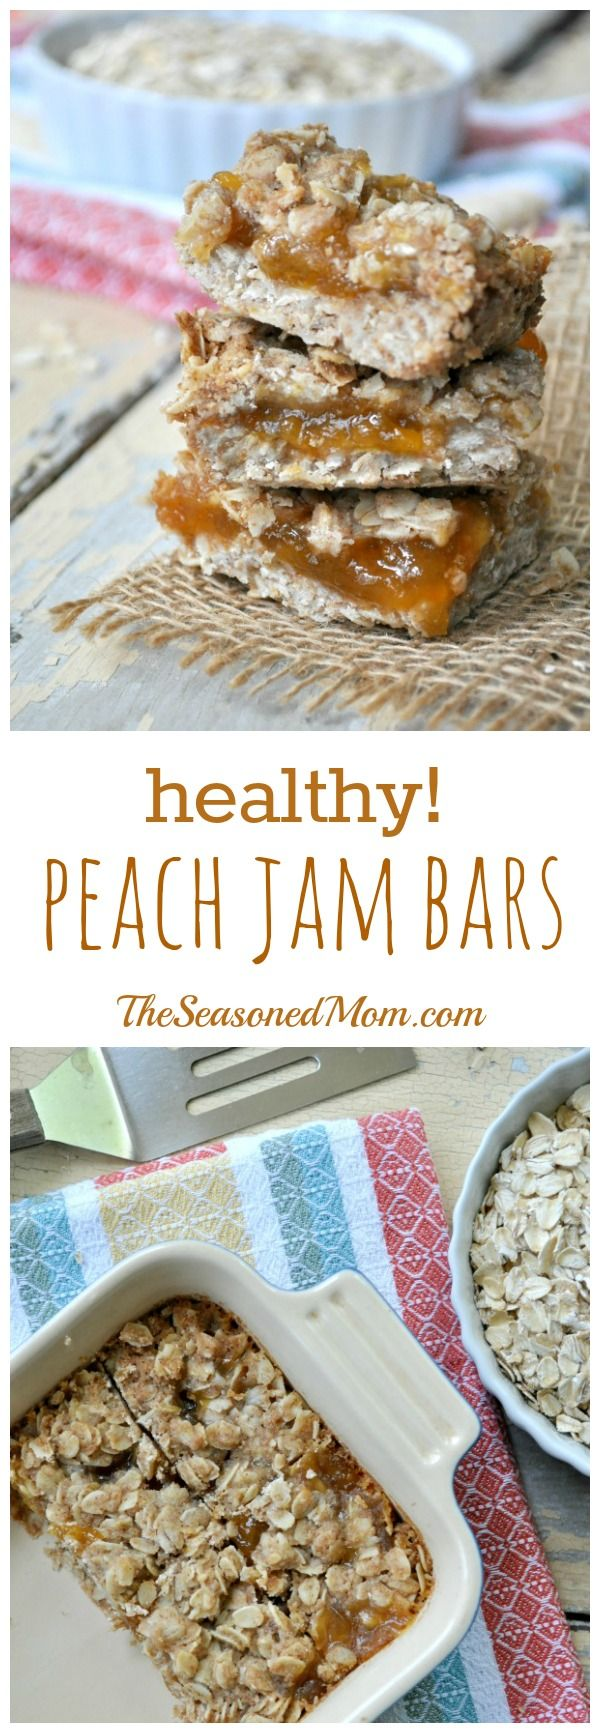 Healthy Peach Jam Bars: only 5 simple ingredients and healthy enough for breakfast, snack, or a light dessert!